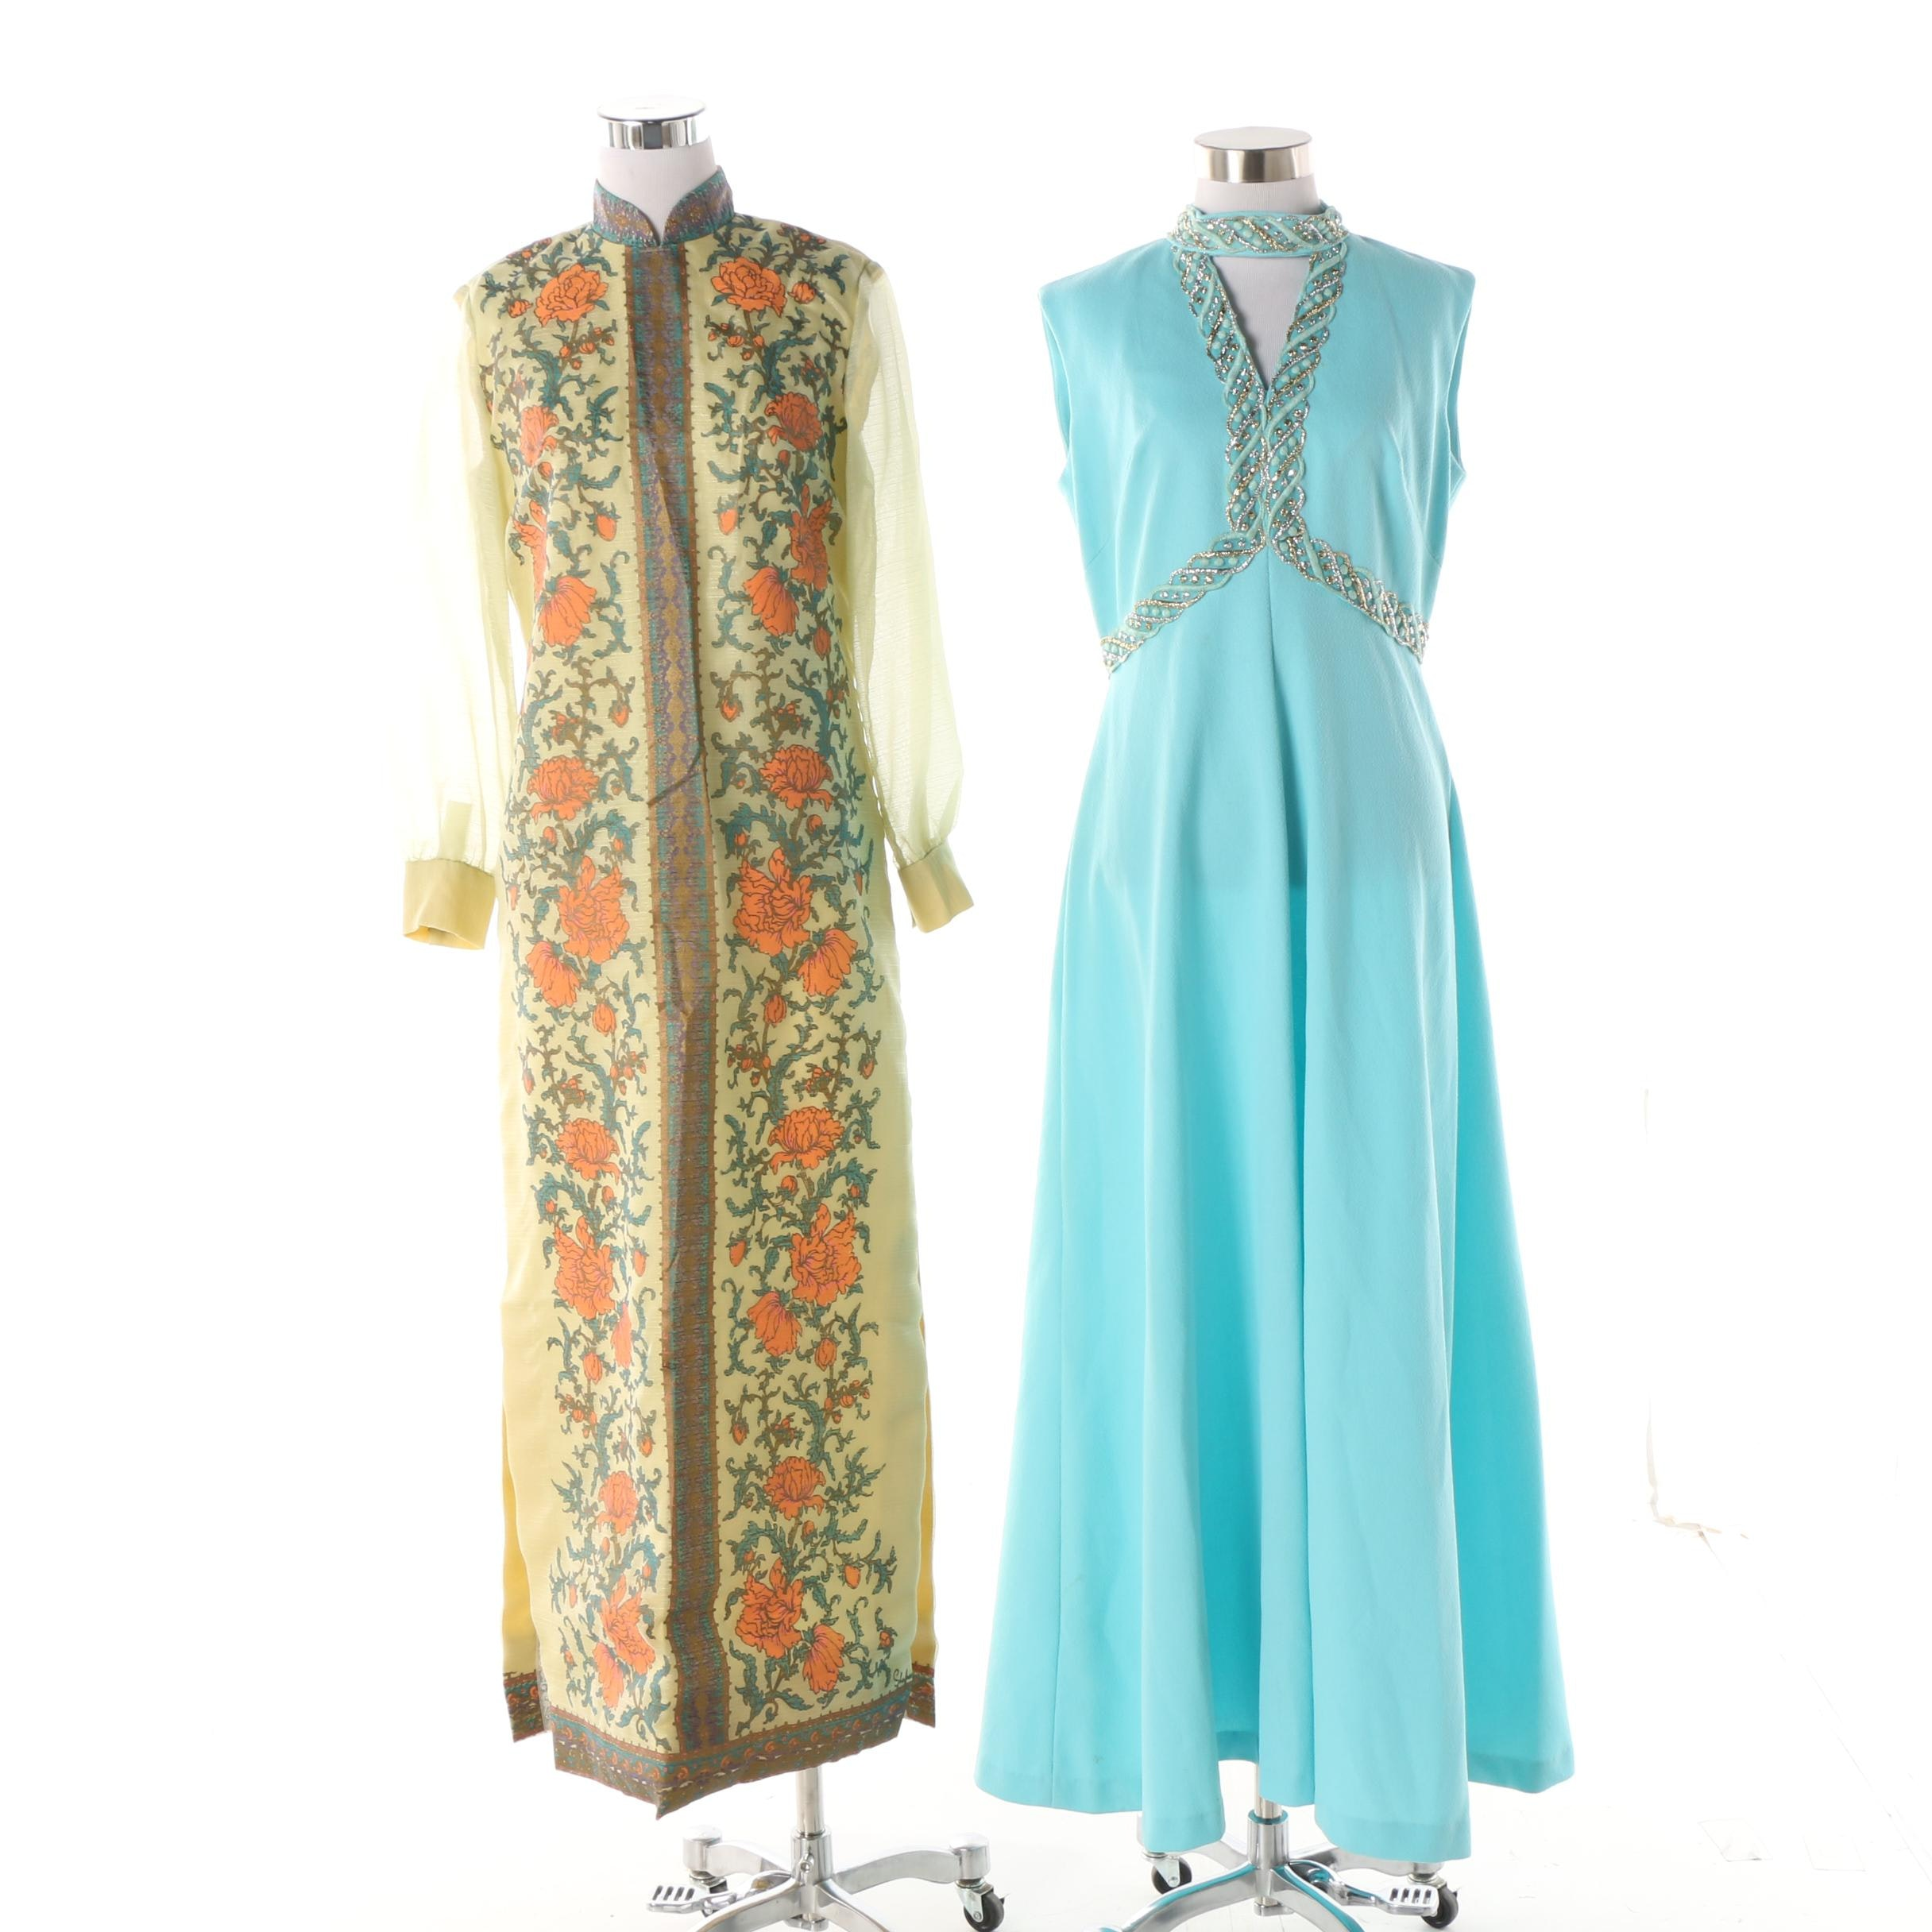 Circa 1970s Alfred Shaheen Screen Print and Unlabeled Embroidered Maxi Dresses